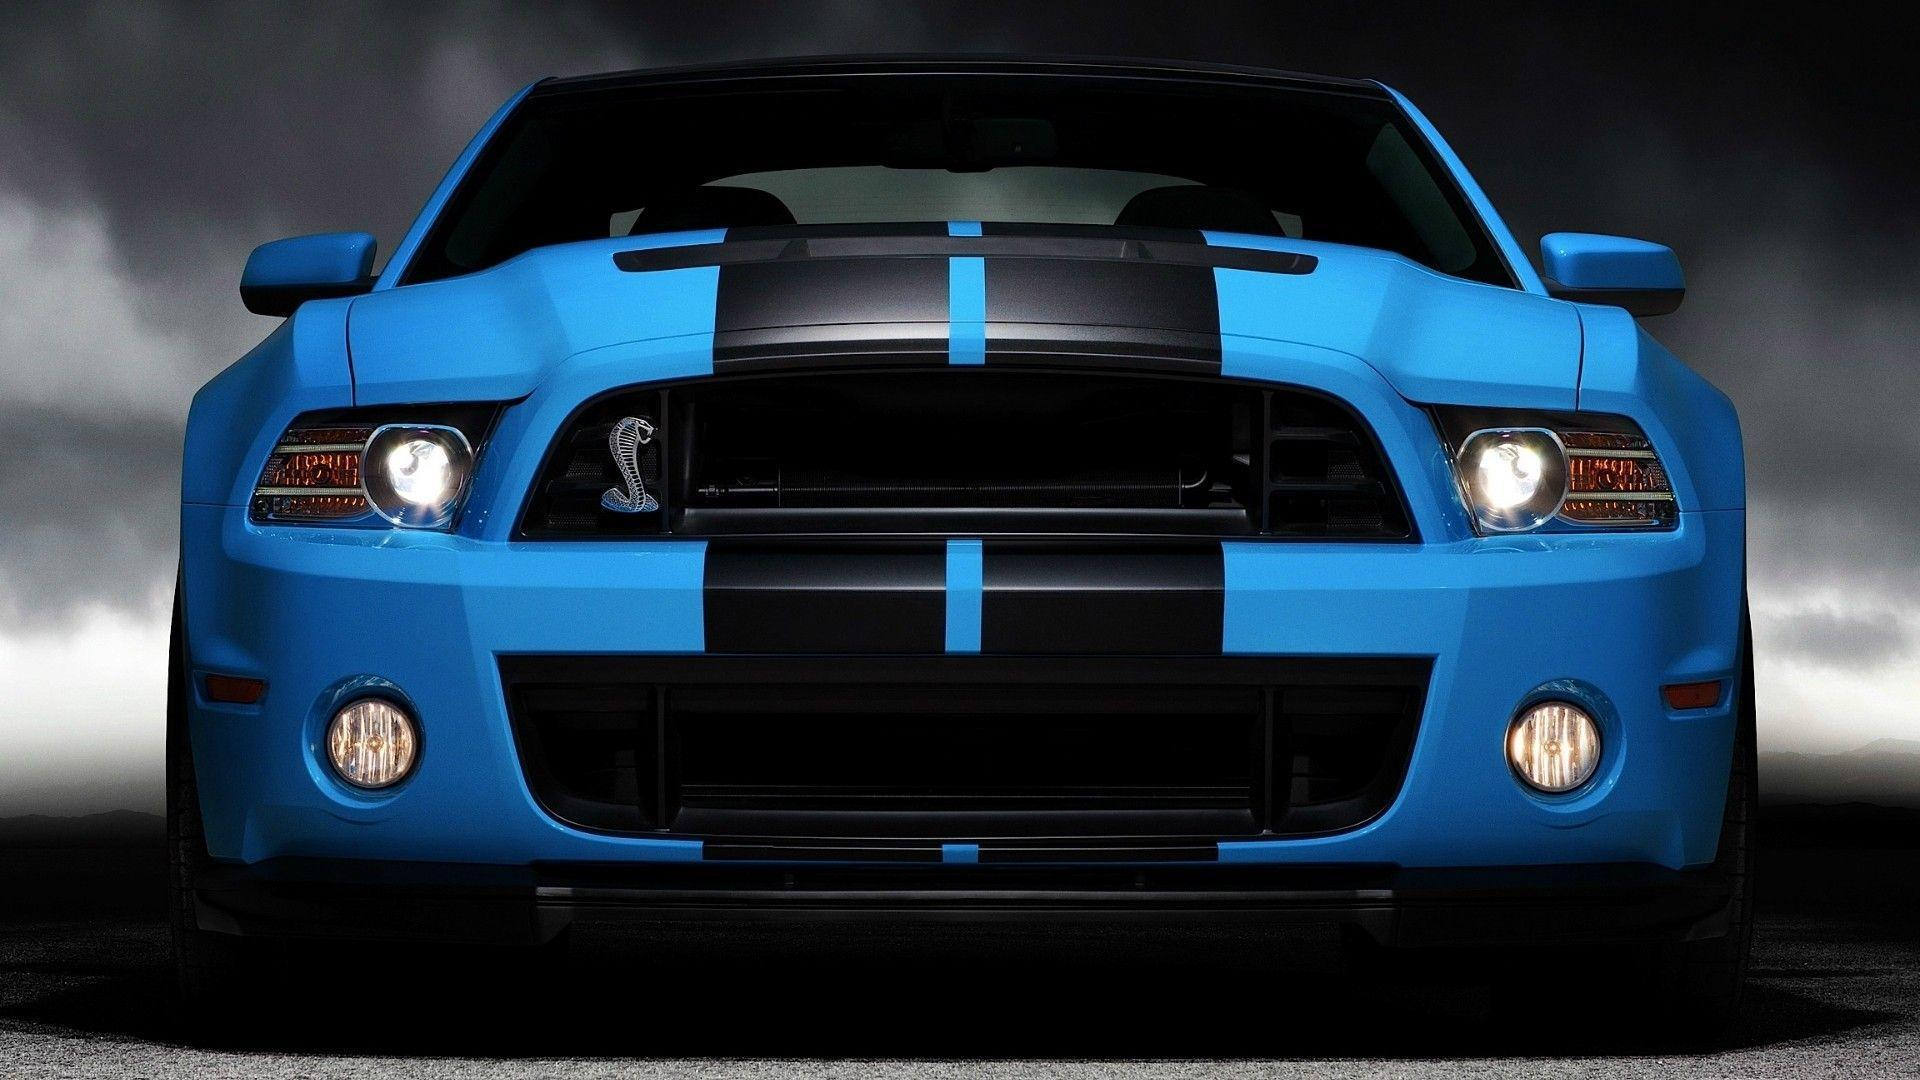 Vehicle: Ford Shelby Ford Mustang Shel By Gt500 Best Quality Hd